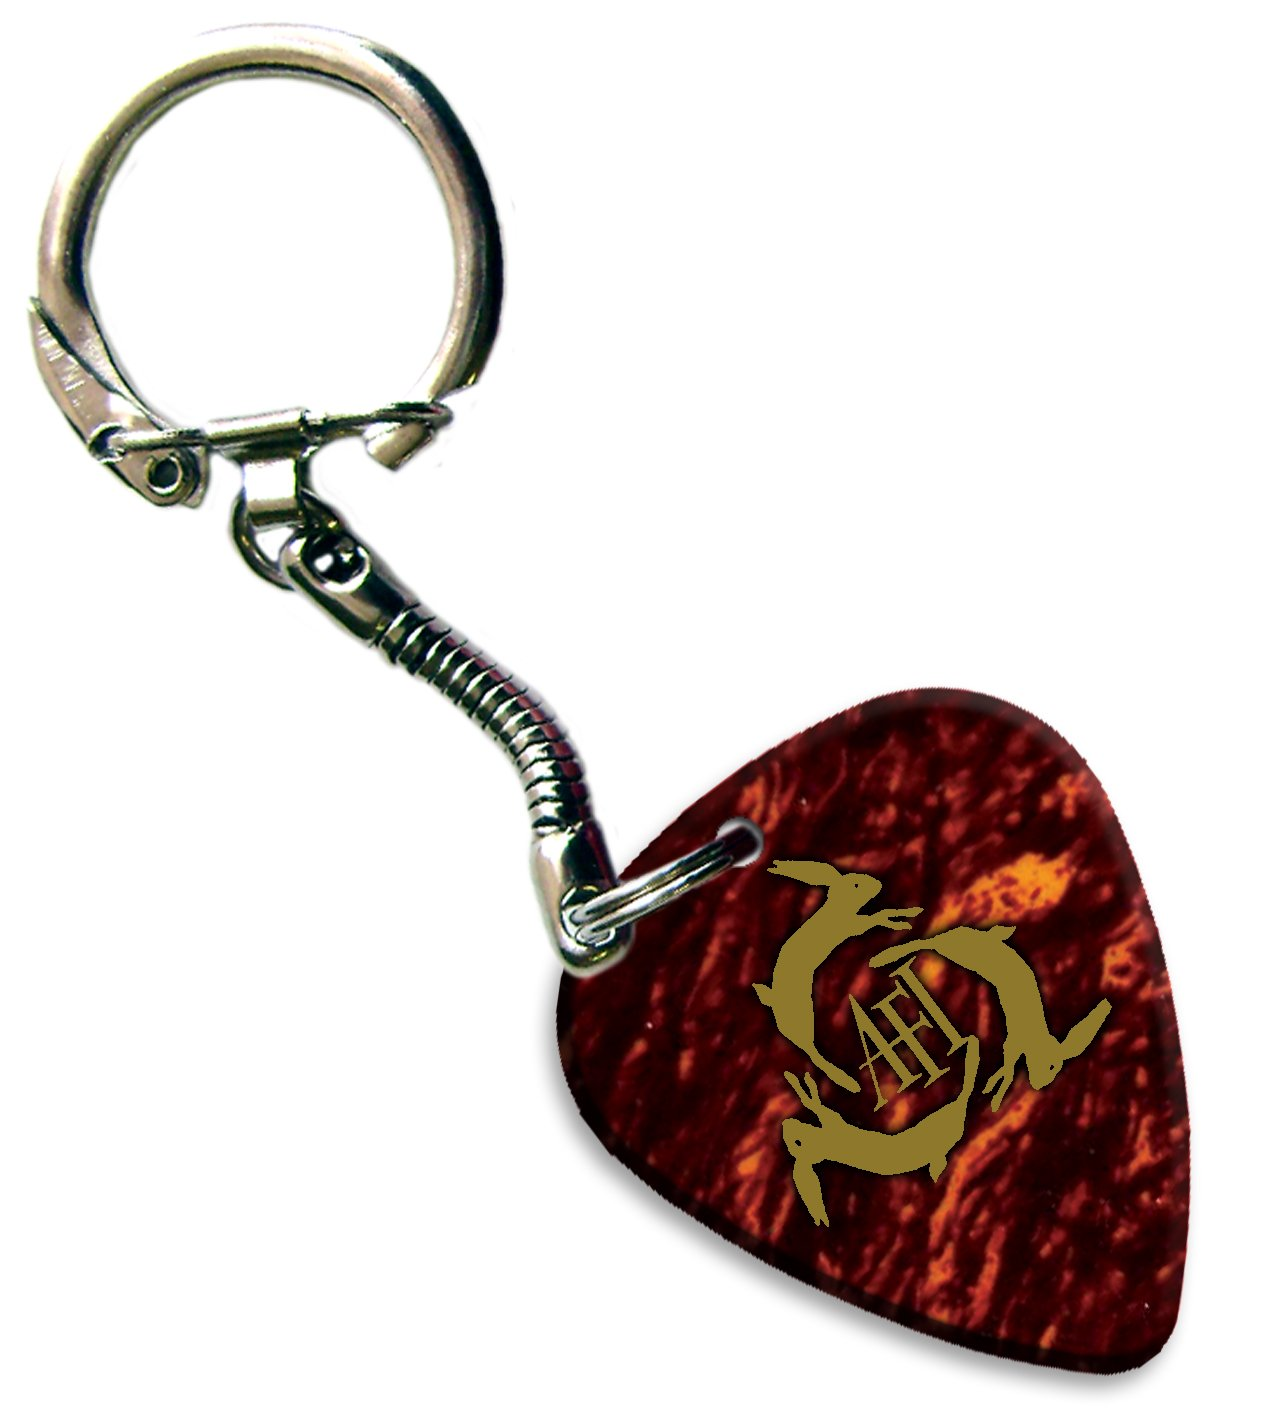 Amazon.com: AFI A Fire Inside Gold Foil Printed Guitar Plectrum Keyring (Tortoise Shell) : Musical Instruments